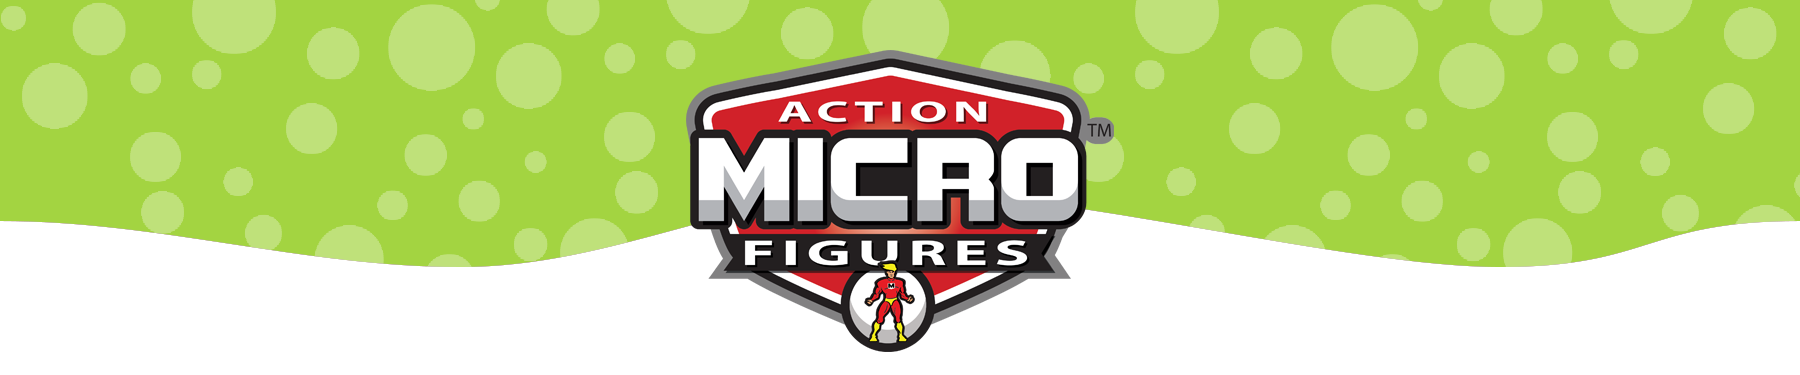 Micro Action Figures